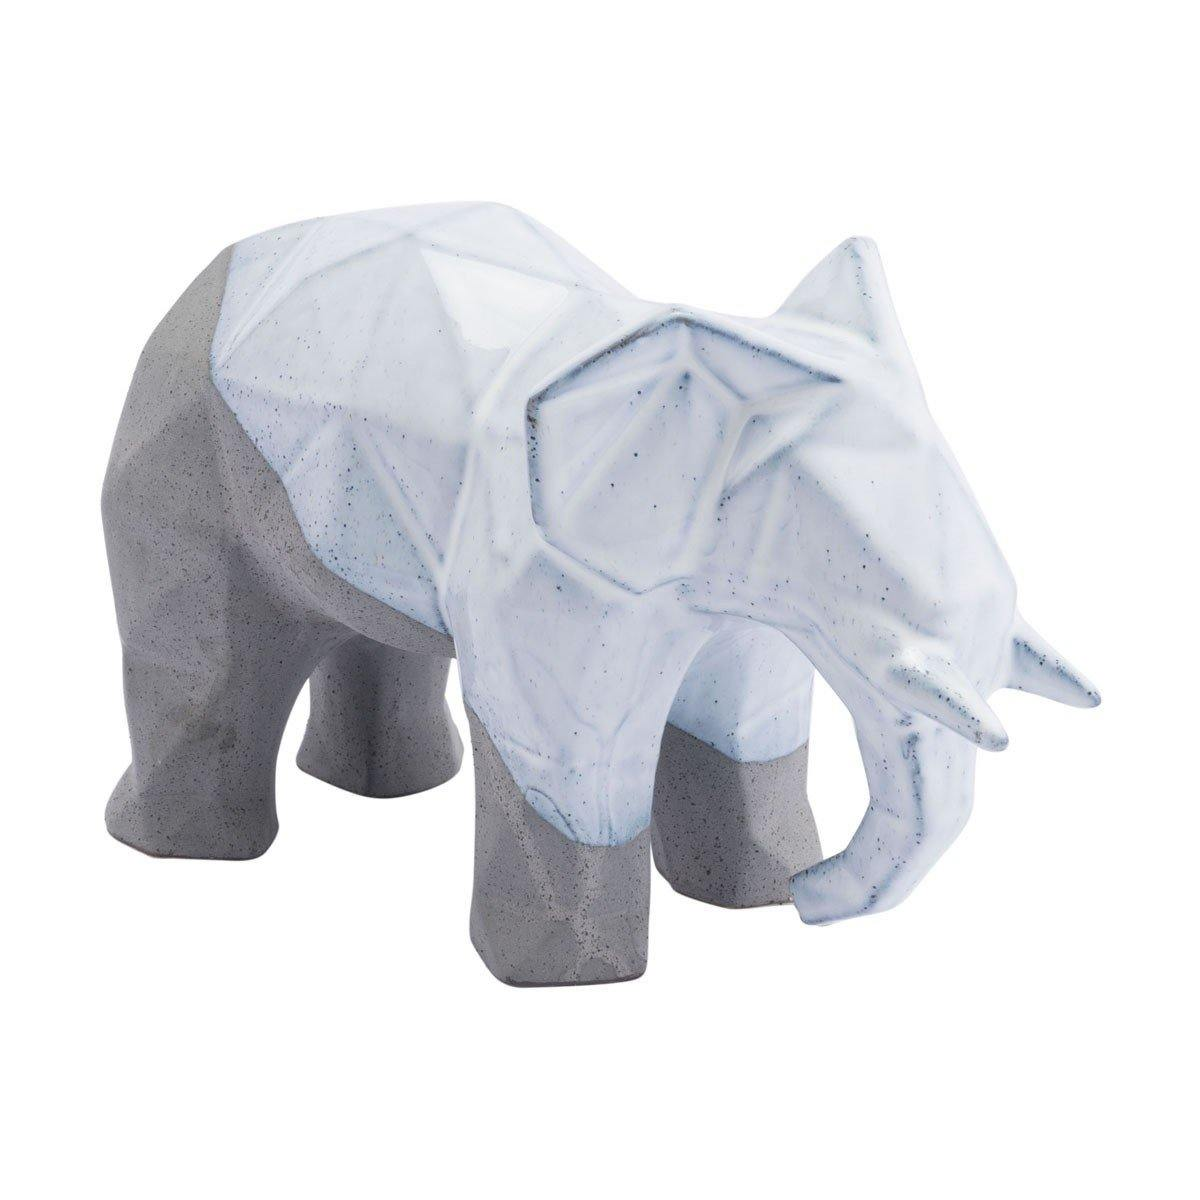 Elephant Geo Contemporary White & Gray - Something to Cherish - Gifts for life because life is a gift.